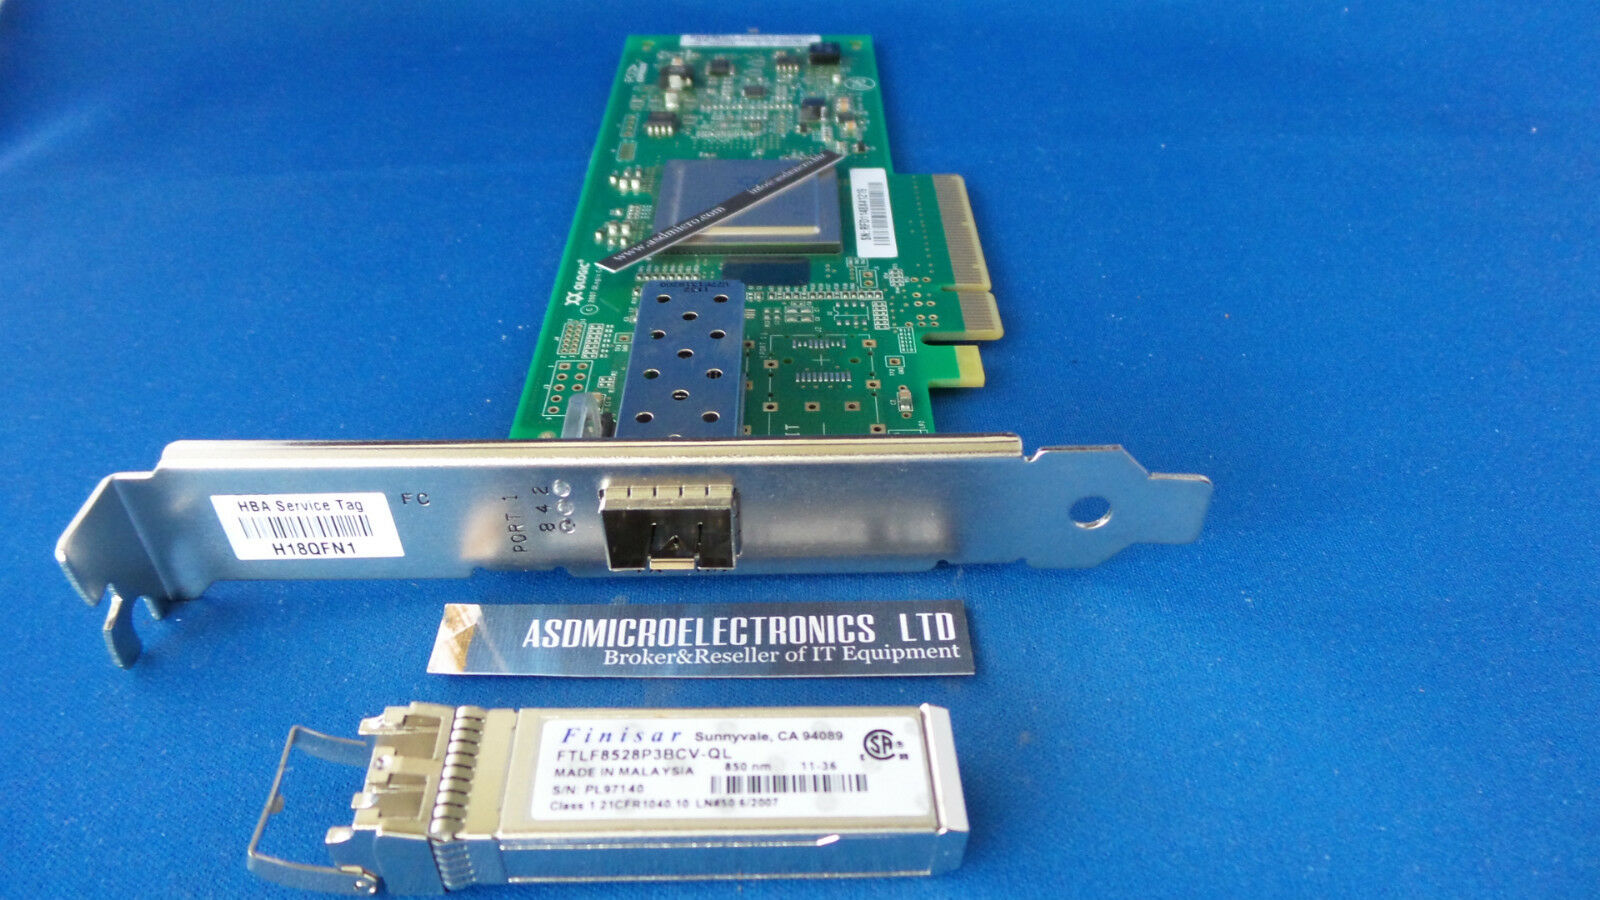 489190 001 Qlogic Qle2560 Fibre Channel Hba 8gb Pci E Sfp Long Brocade 57 1000117 01 Up To 10gb 1 Of 1only 2 Available